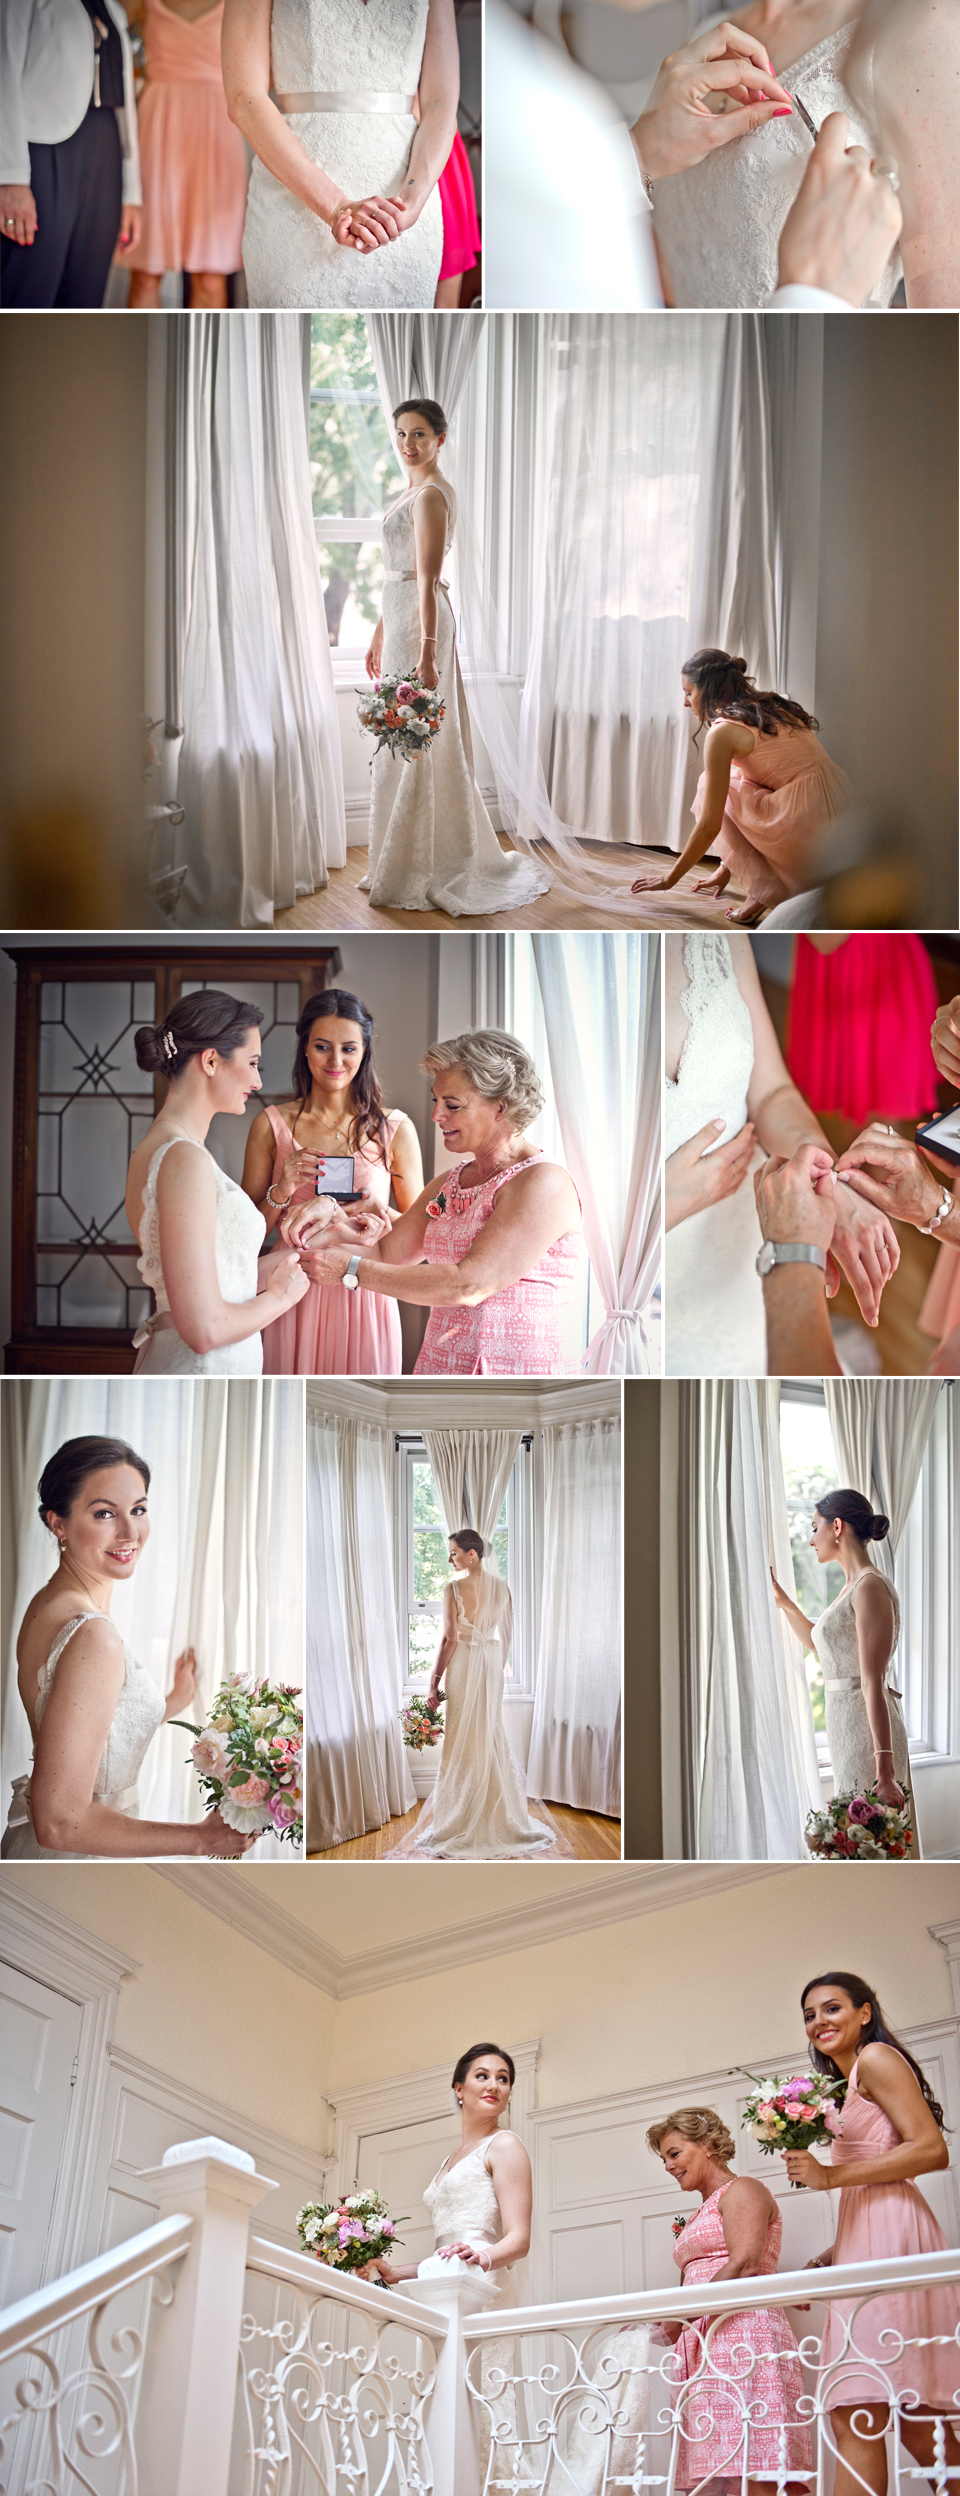 Wedding Photographer Montreal | Bride | Casa Bianca | LindsayMuciyPhotography